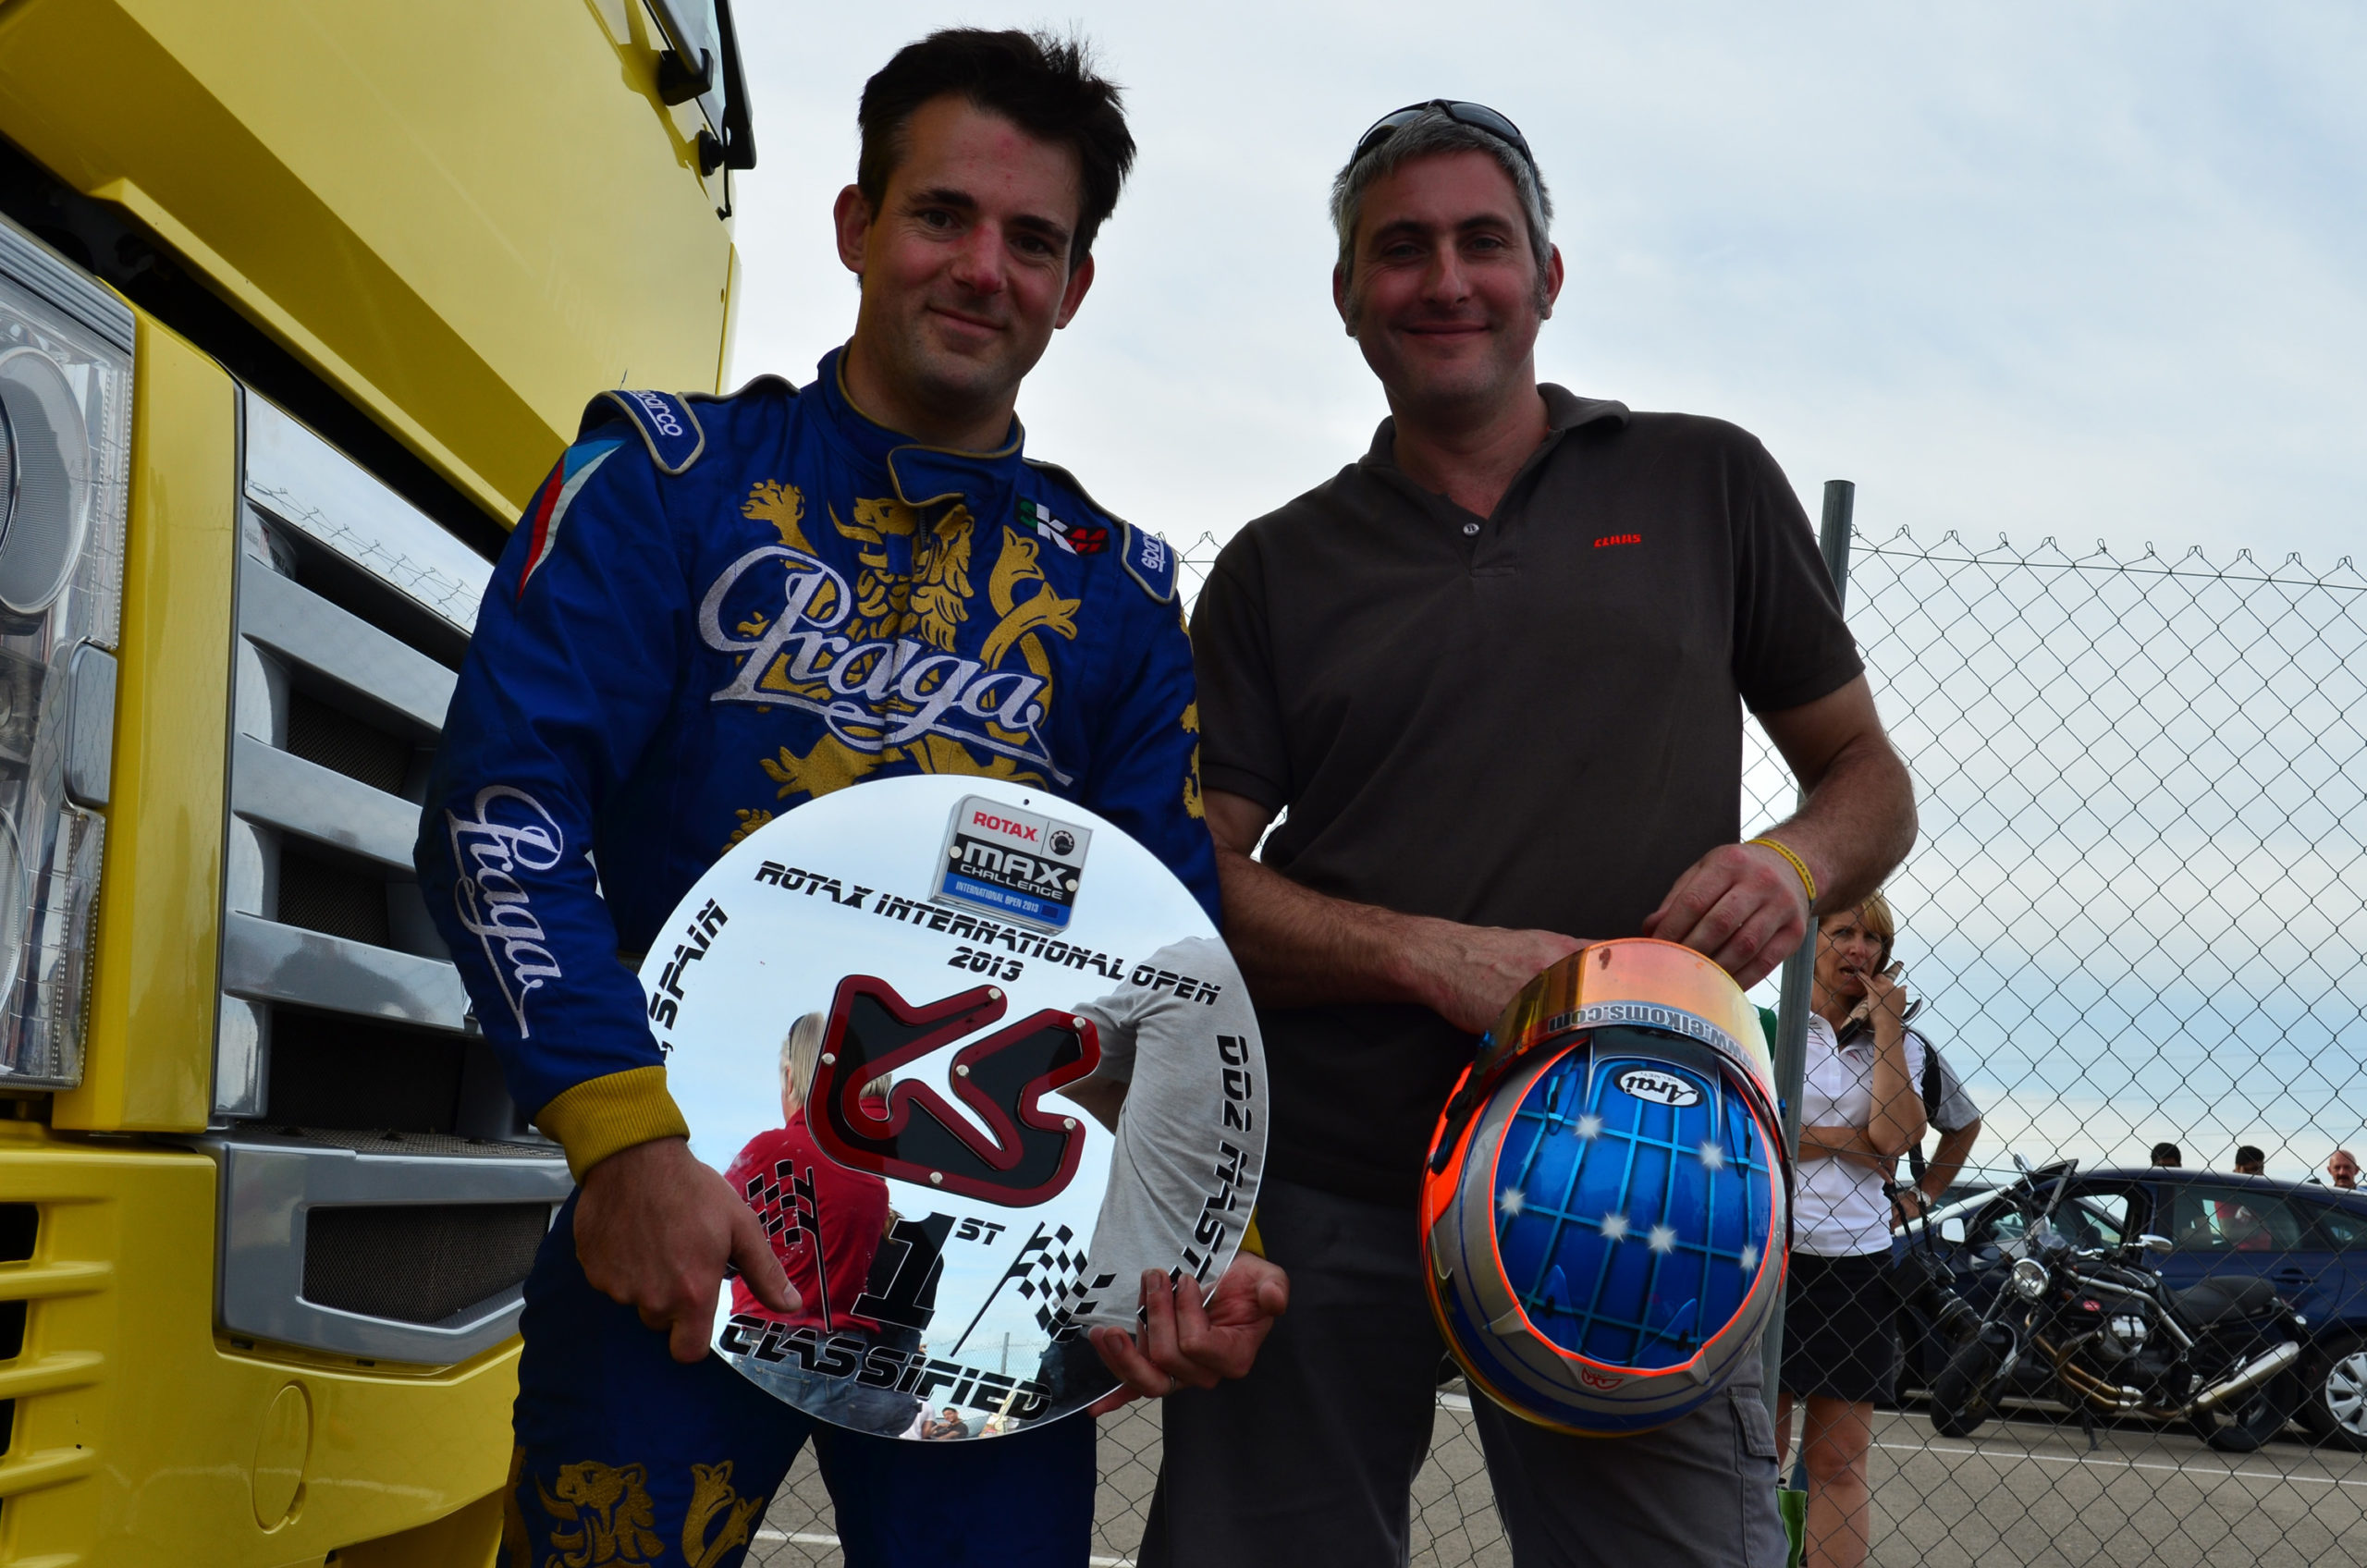 Praga wins DD2 Masters at Rotax Int. Open Zuera 2013